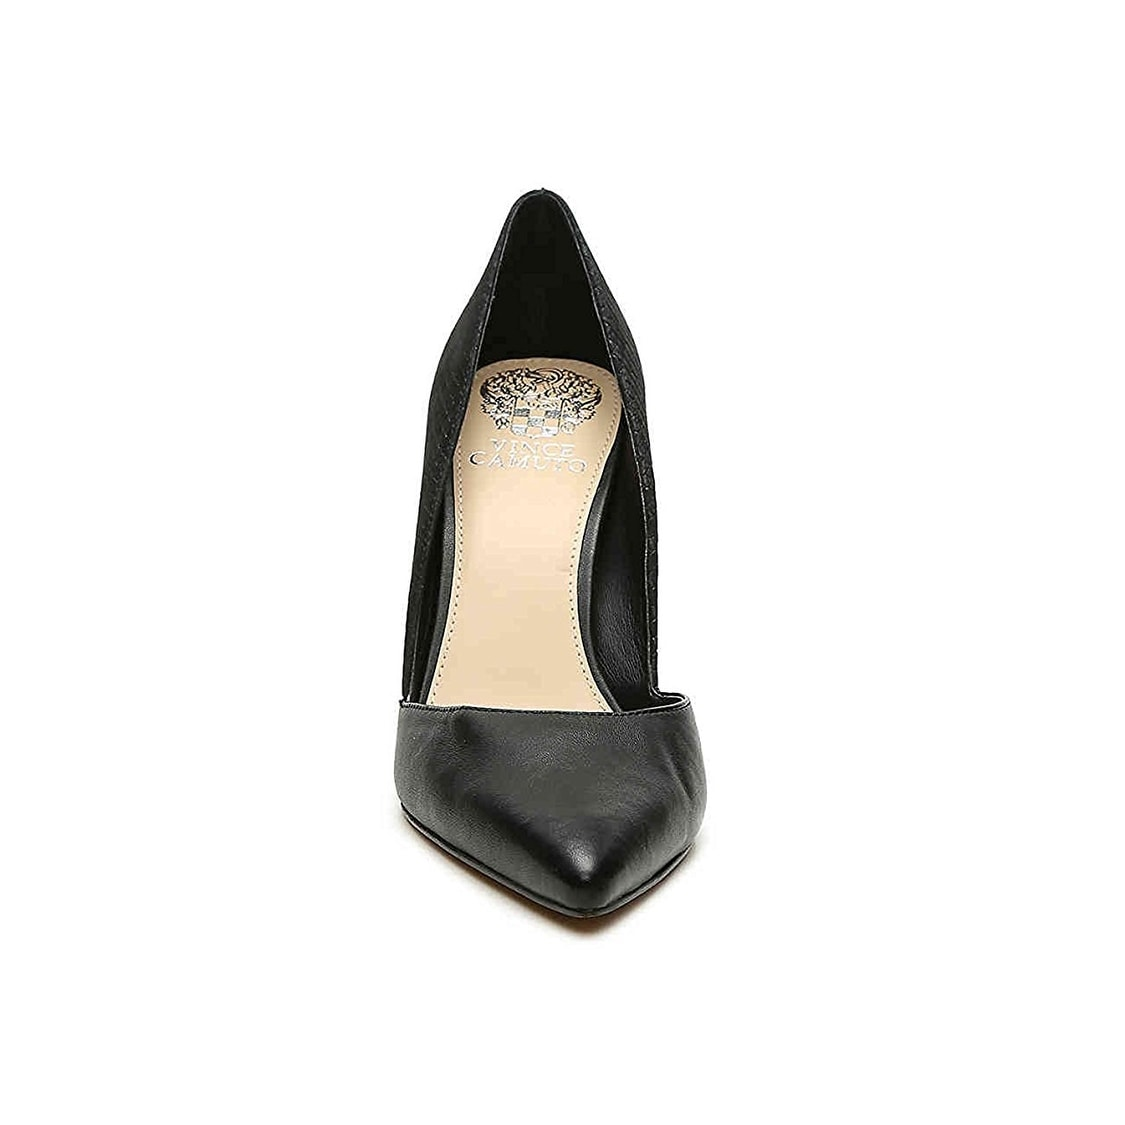 96ac35a7bc0 Shop Vince Camuto Womens Airmosah Pointed Toe D-orsay Pumps - Free Shipping  Today - Overstock - 20987571